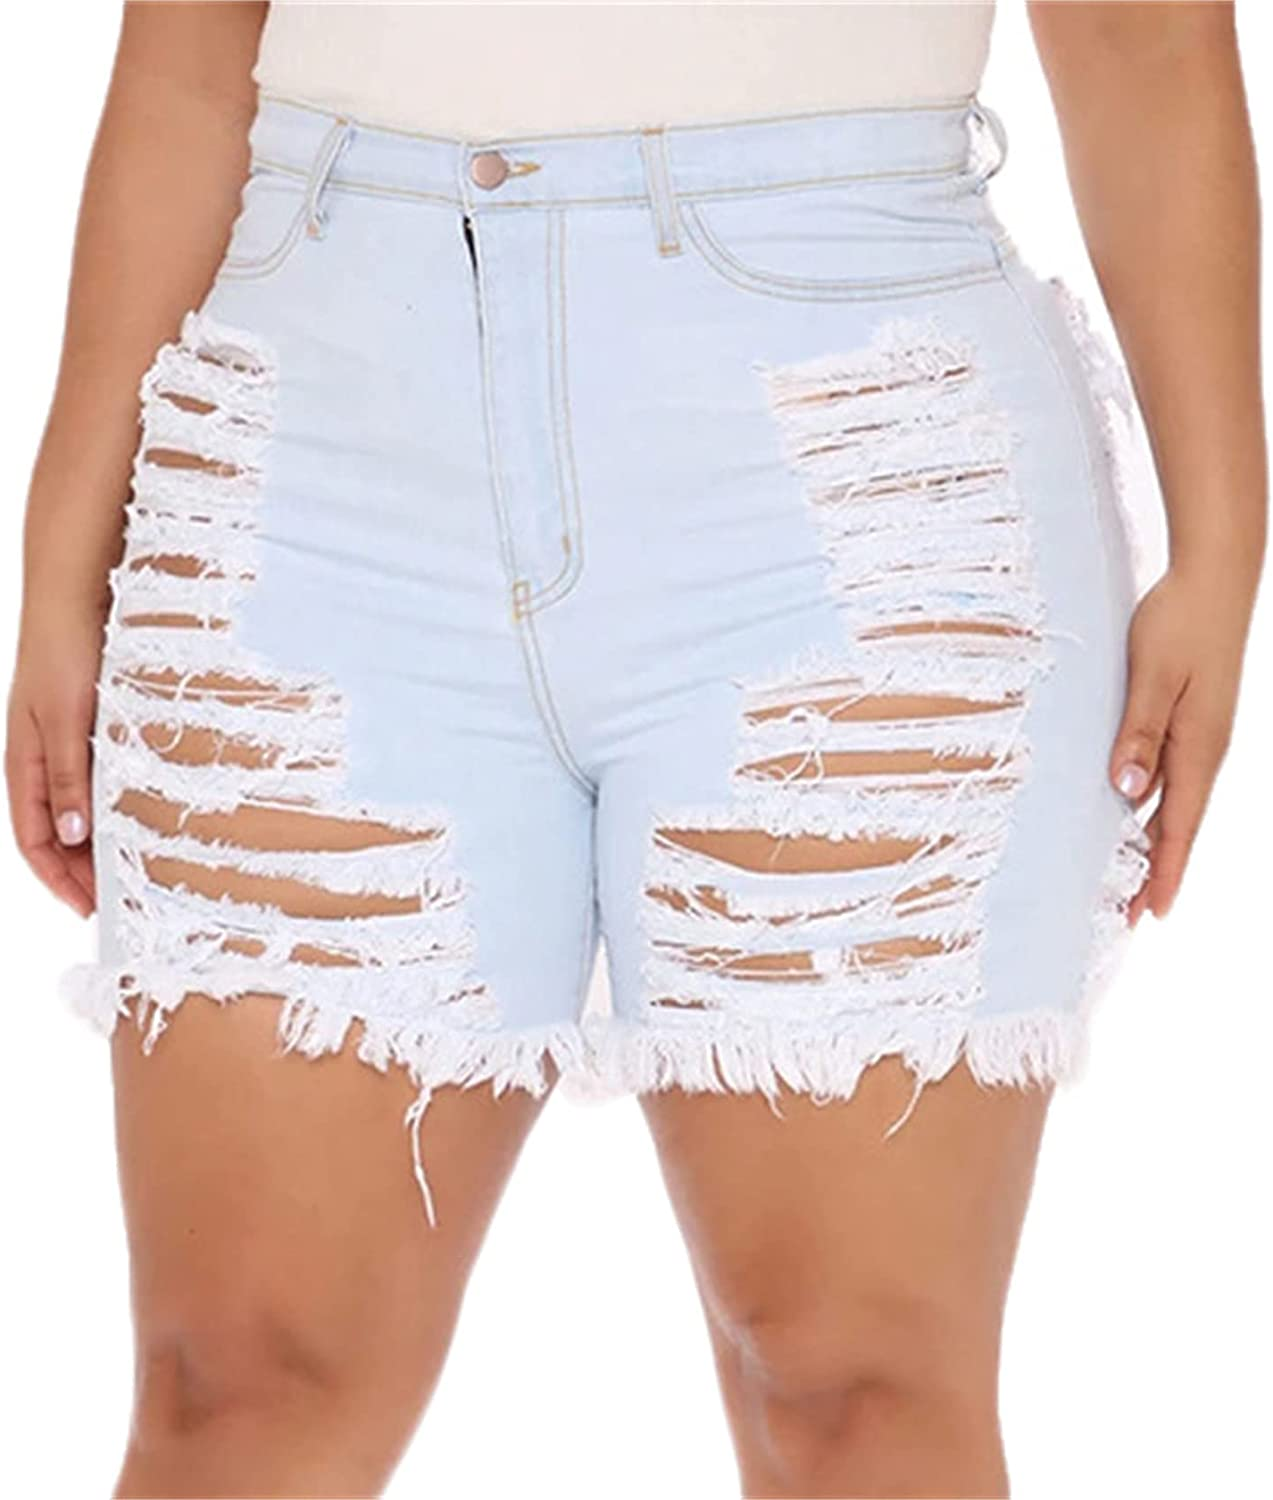 Andongnywell Womens Mid Waist Ripped Hole Short Jeans Distressed Sexy Destroyed Denim Shorts Cut Hollow Button Jeans